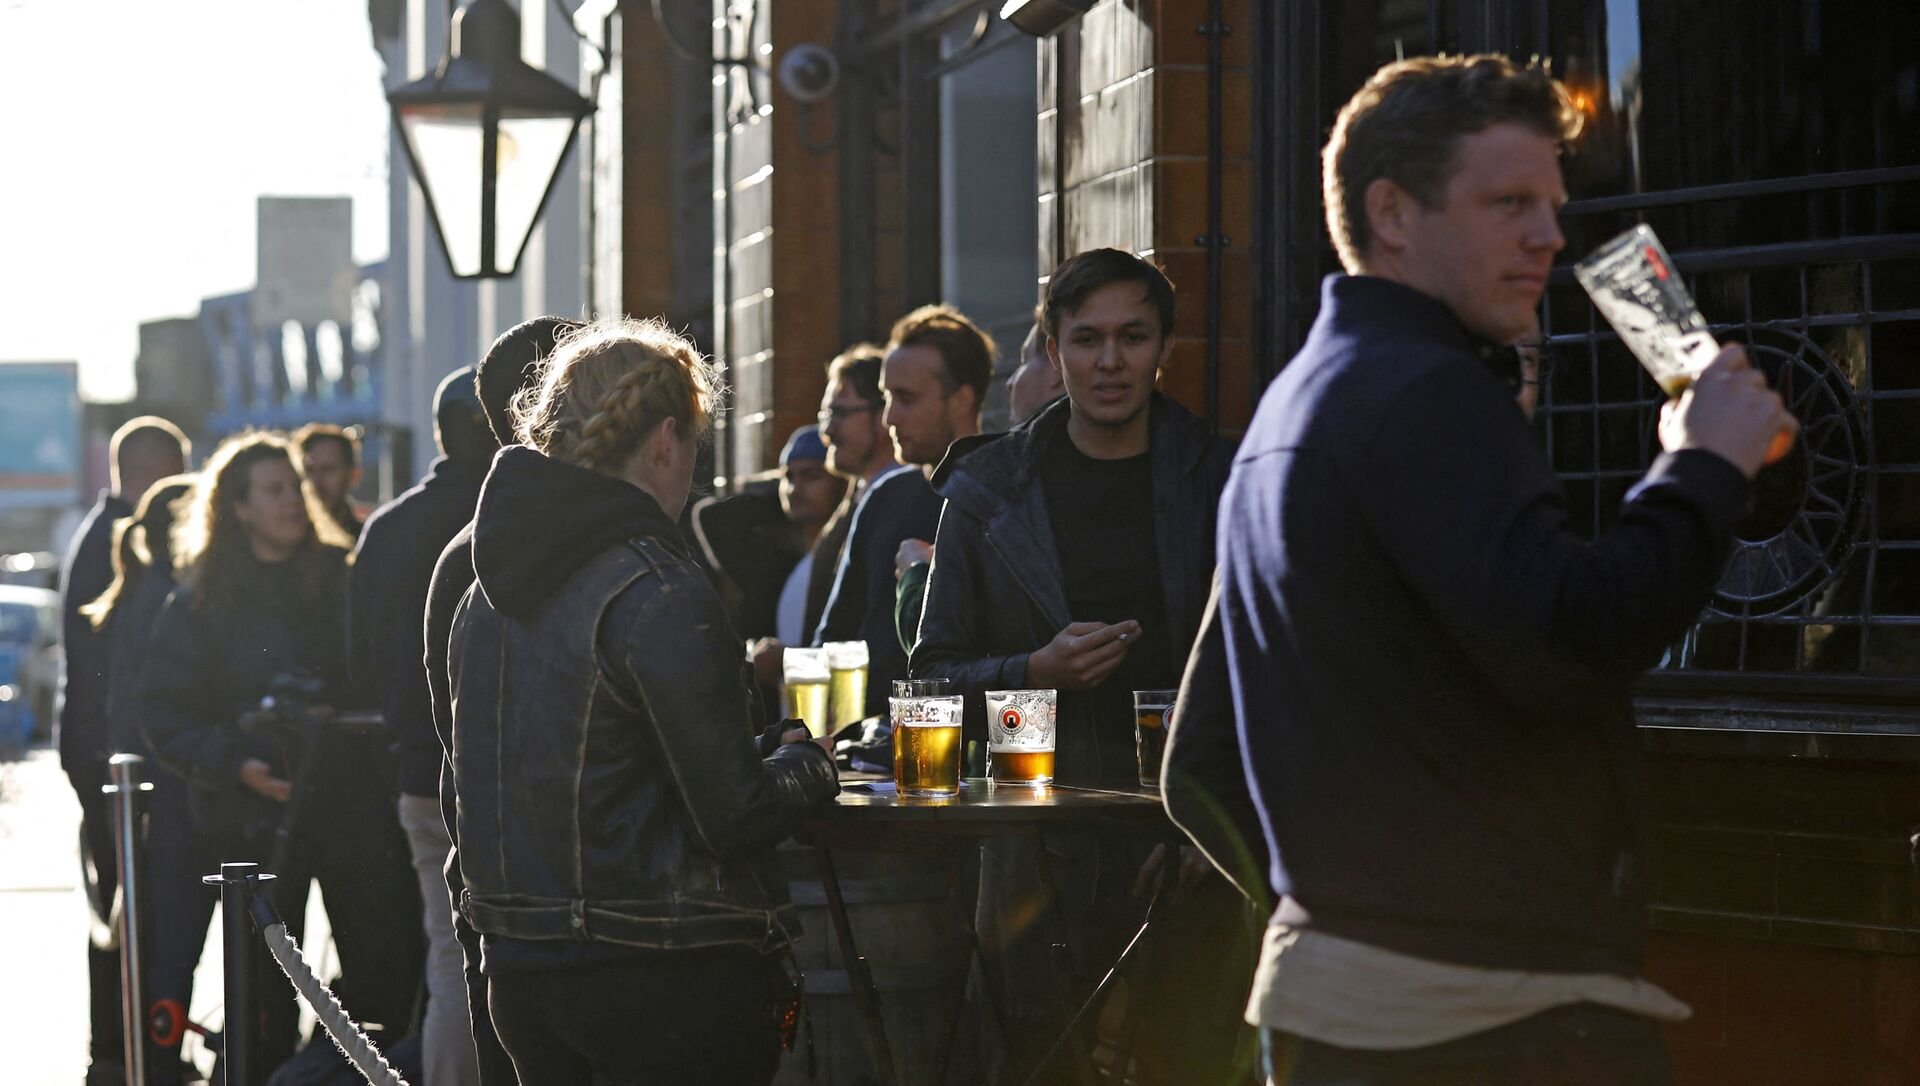 After-work drinkers enjoy a pint outside a pub in Borough Market, in London on September 25, 2020, as new earlier closing times for pubs and bars in England and Wales are introduced to combat the spread of the coronavirus. - Sputnik Italia, 1920, 18.04.2021